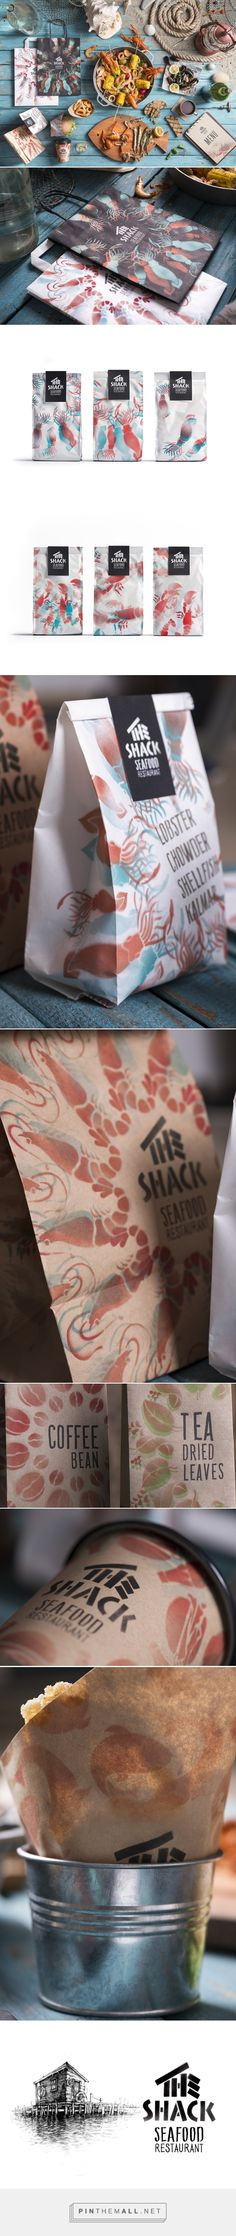 The Shack on Behance by Backbone Branding Yerevan, Armenia curated by Packaging Diva PD. Love this seafood packaging branding. Look at those images on the bags.